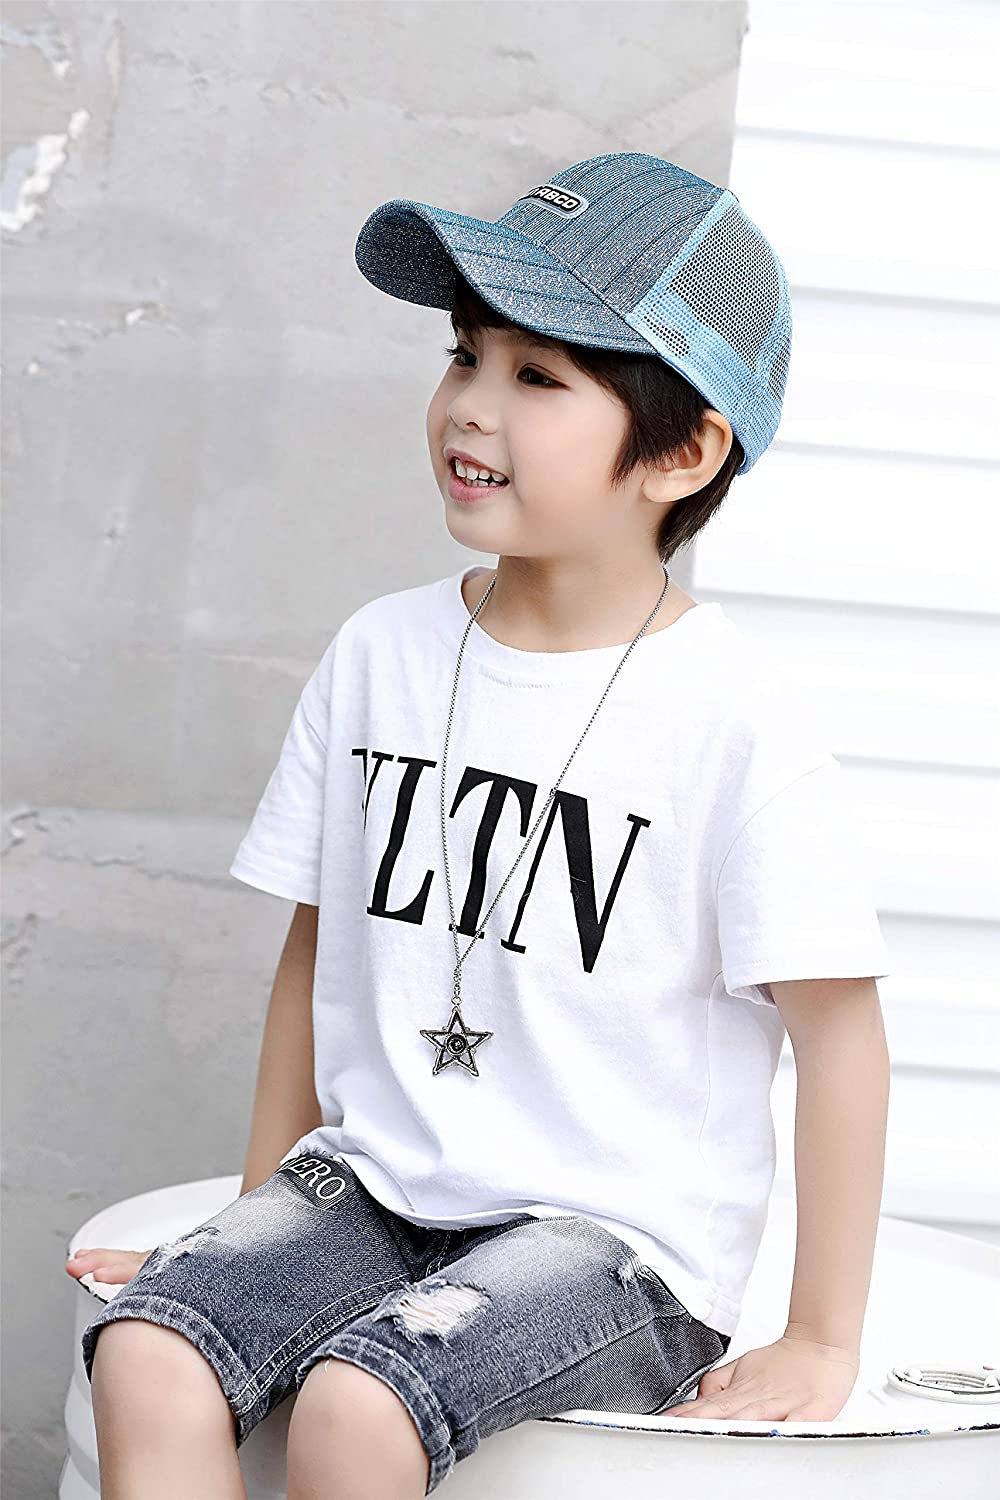 ACVIP Little Girls Shimmering Metallic Fancy Baseball Cap